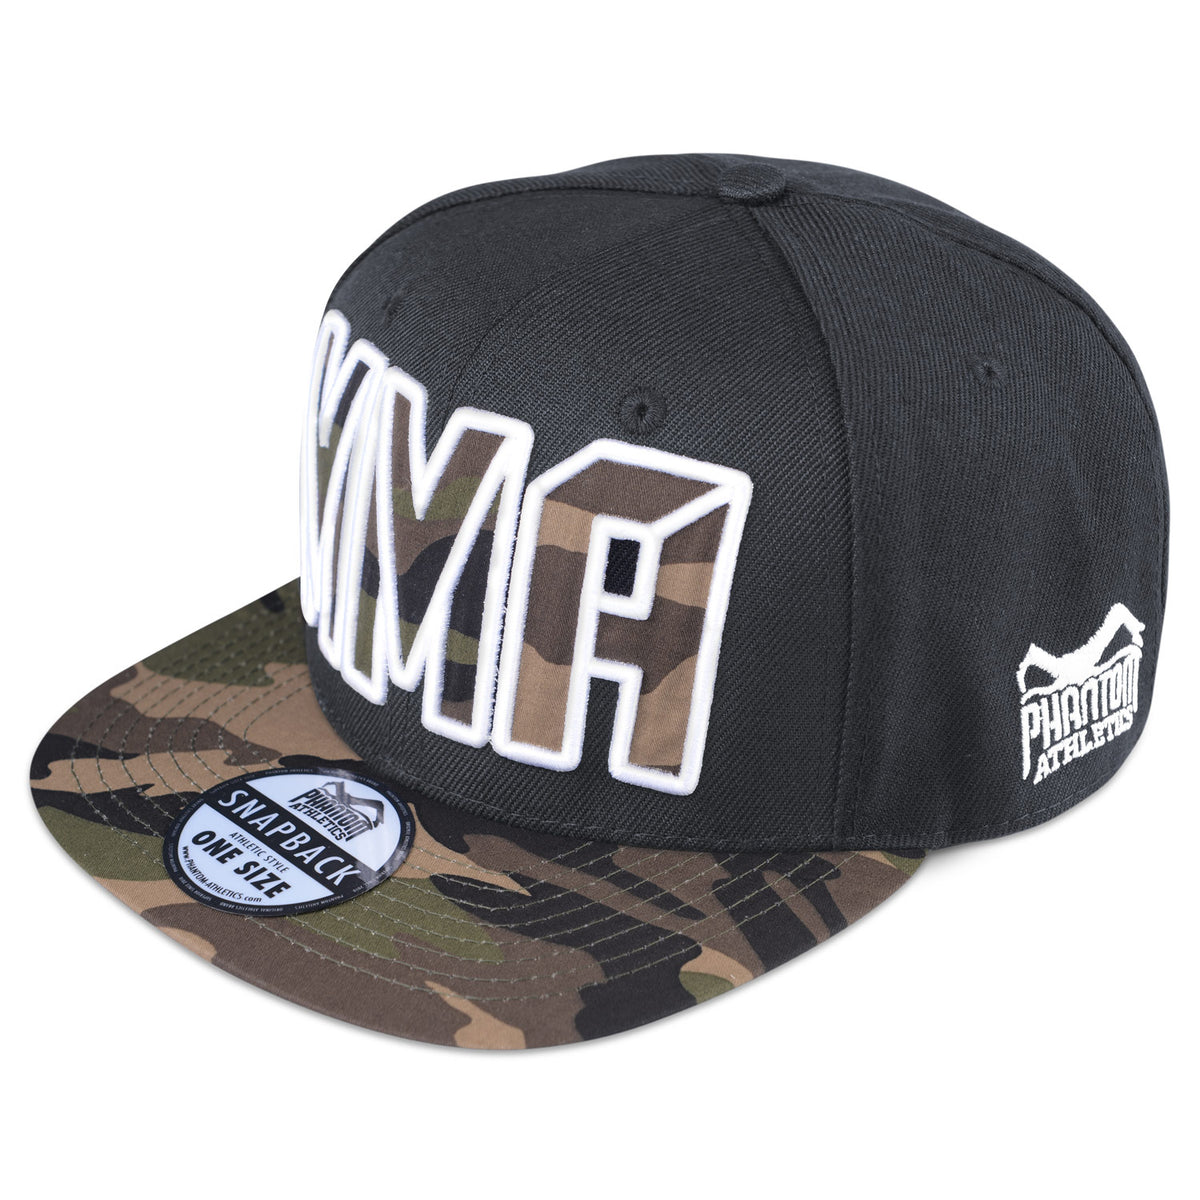 Cap MMA - PHANTOM ATHLETICS